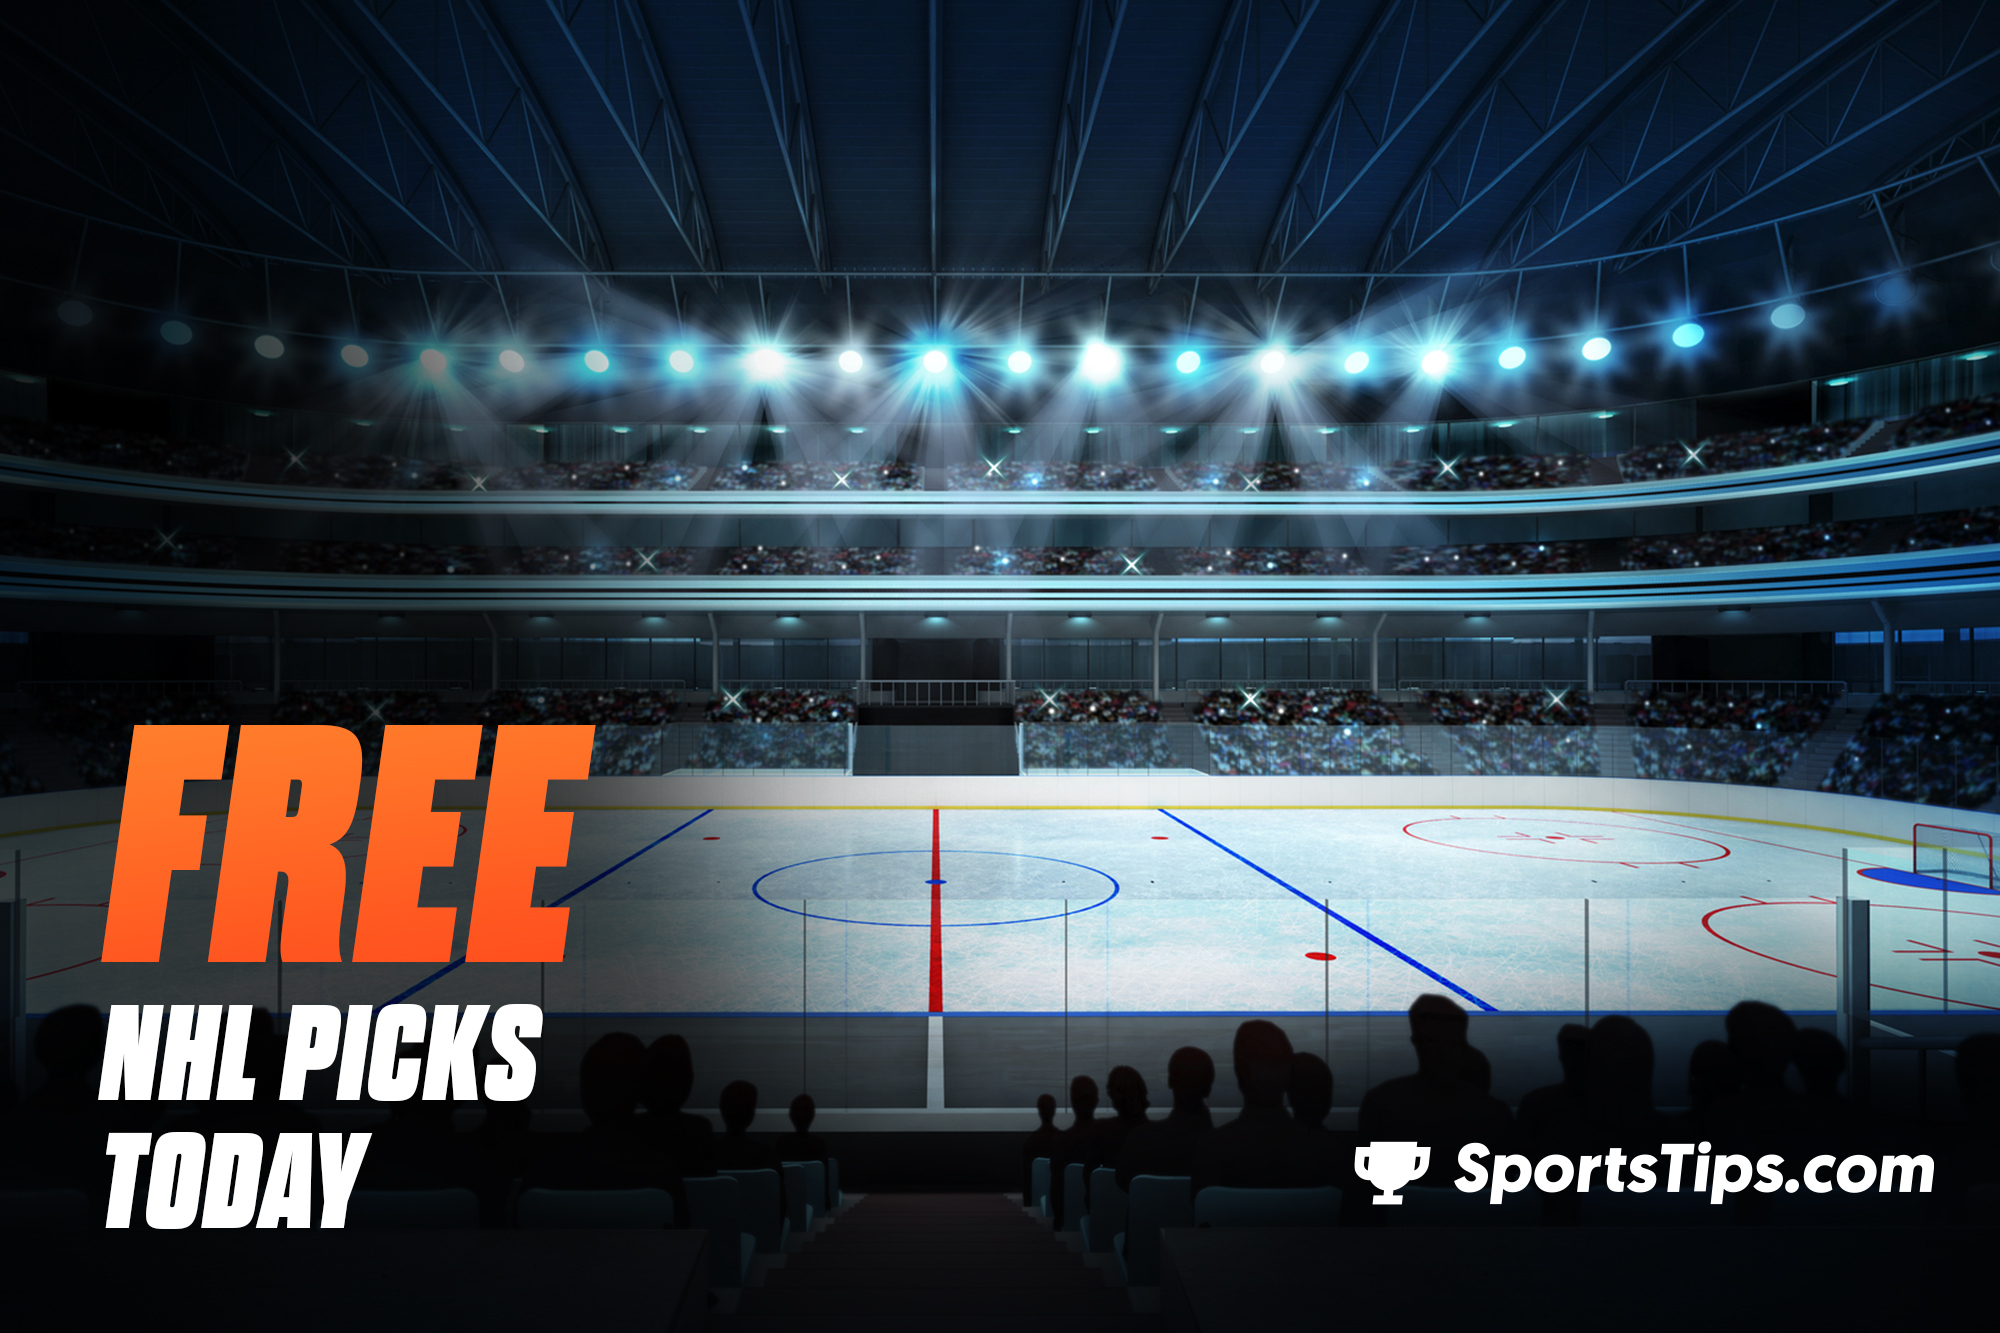 Free NHL Picks Today for Sunday, February 21st, 2021